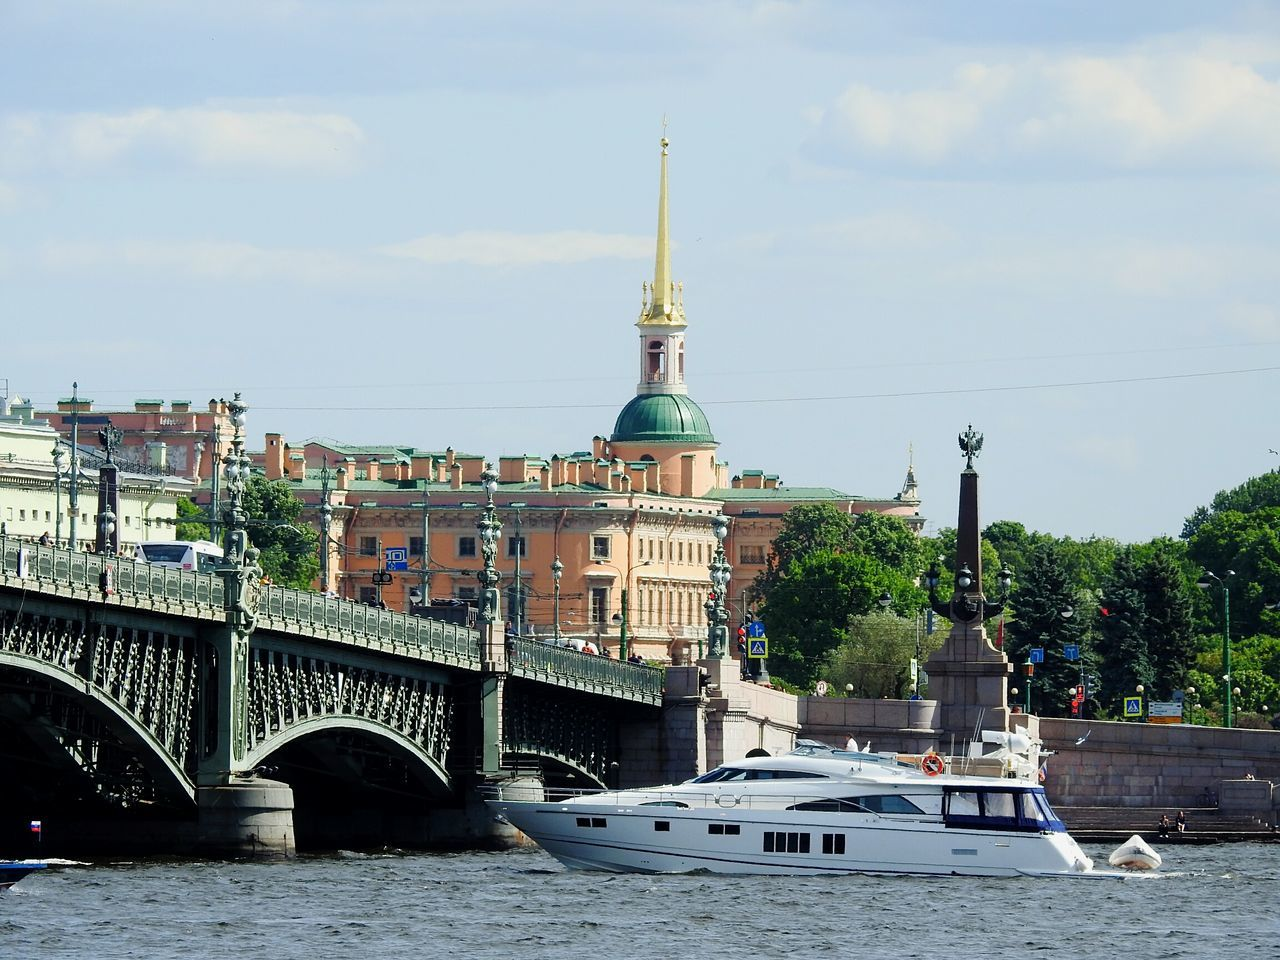 Troickii Bridge Little Boat Castle Mikhailovsky Castle Sankt-Petersburg Russia Neva River Best Place On Earth Summer ☀